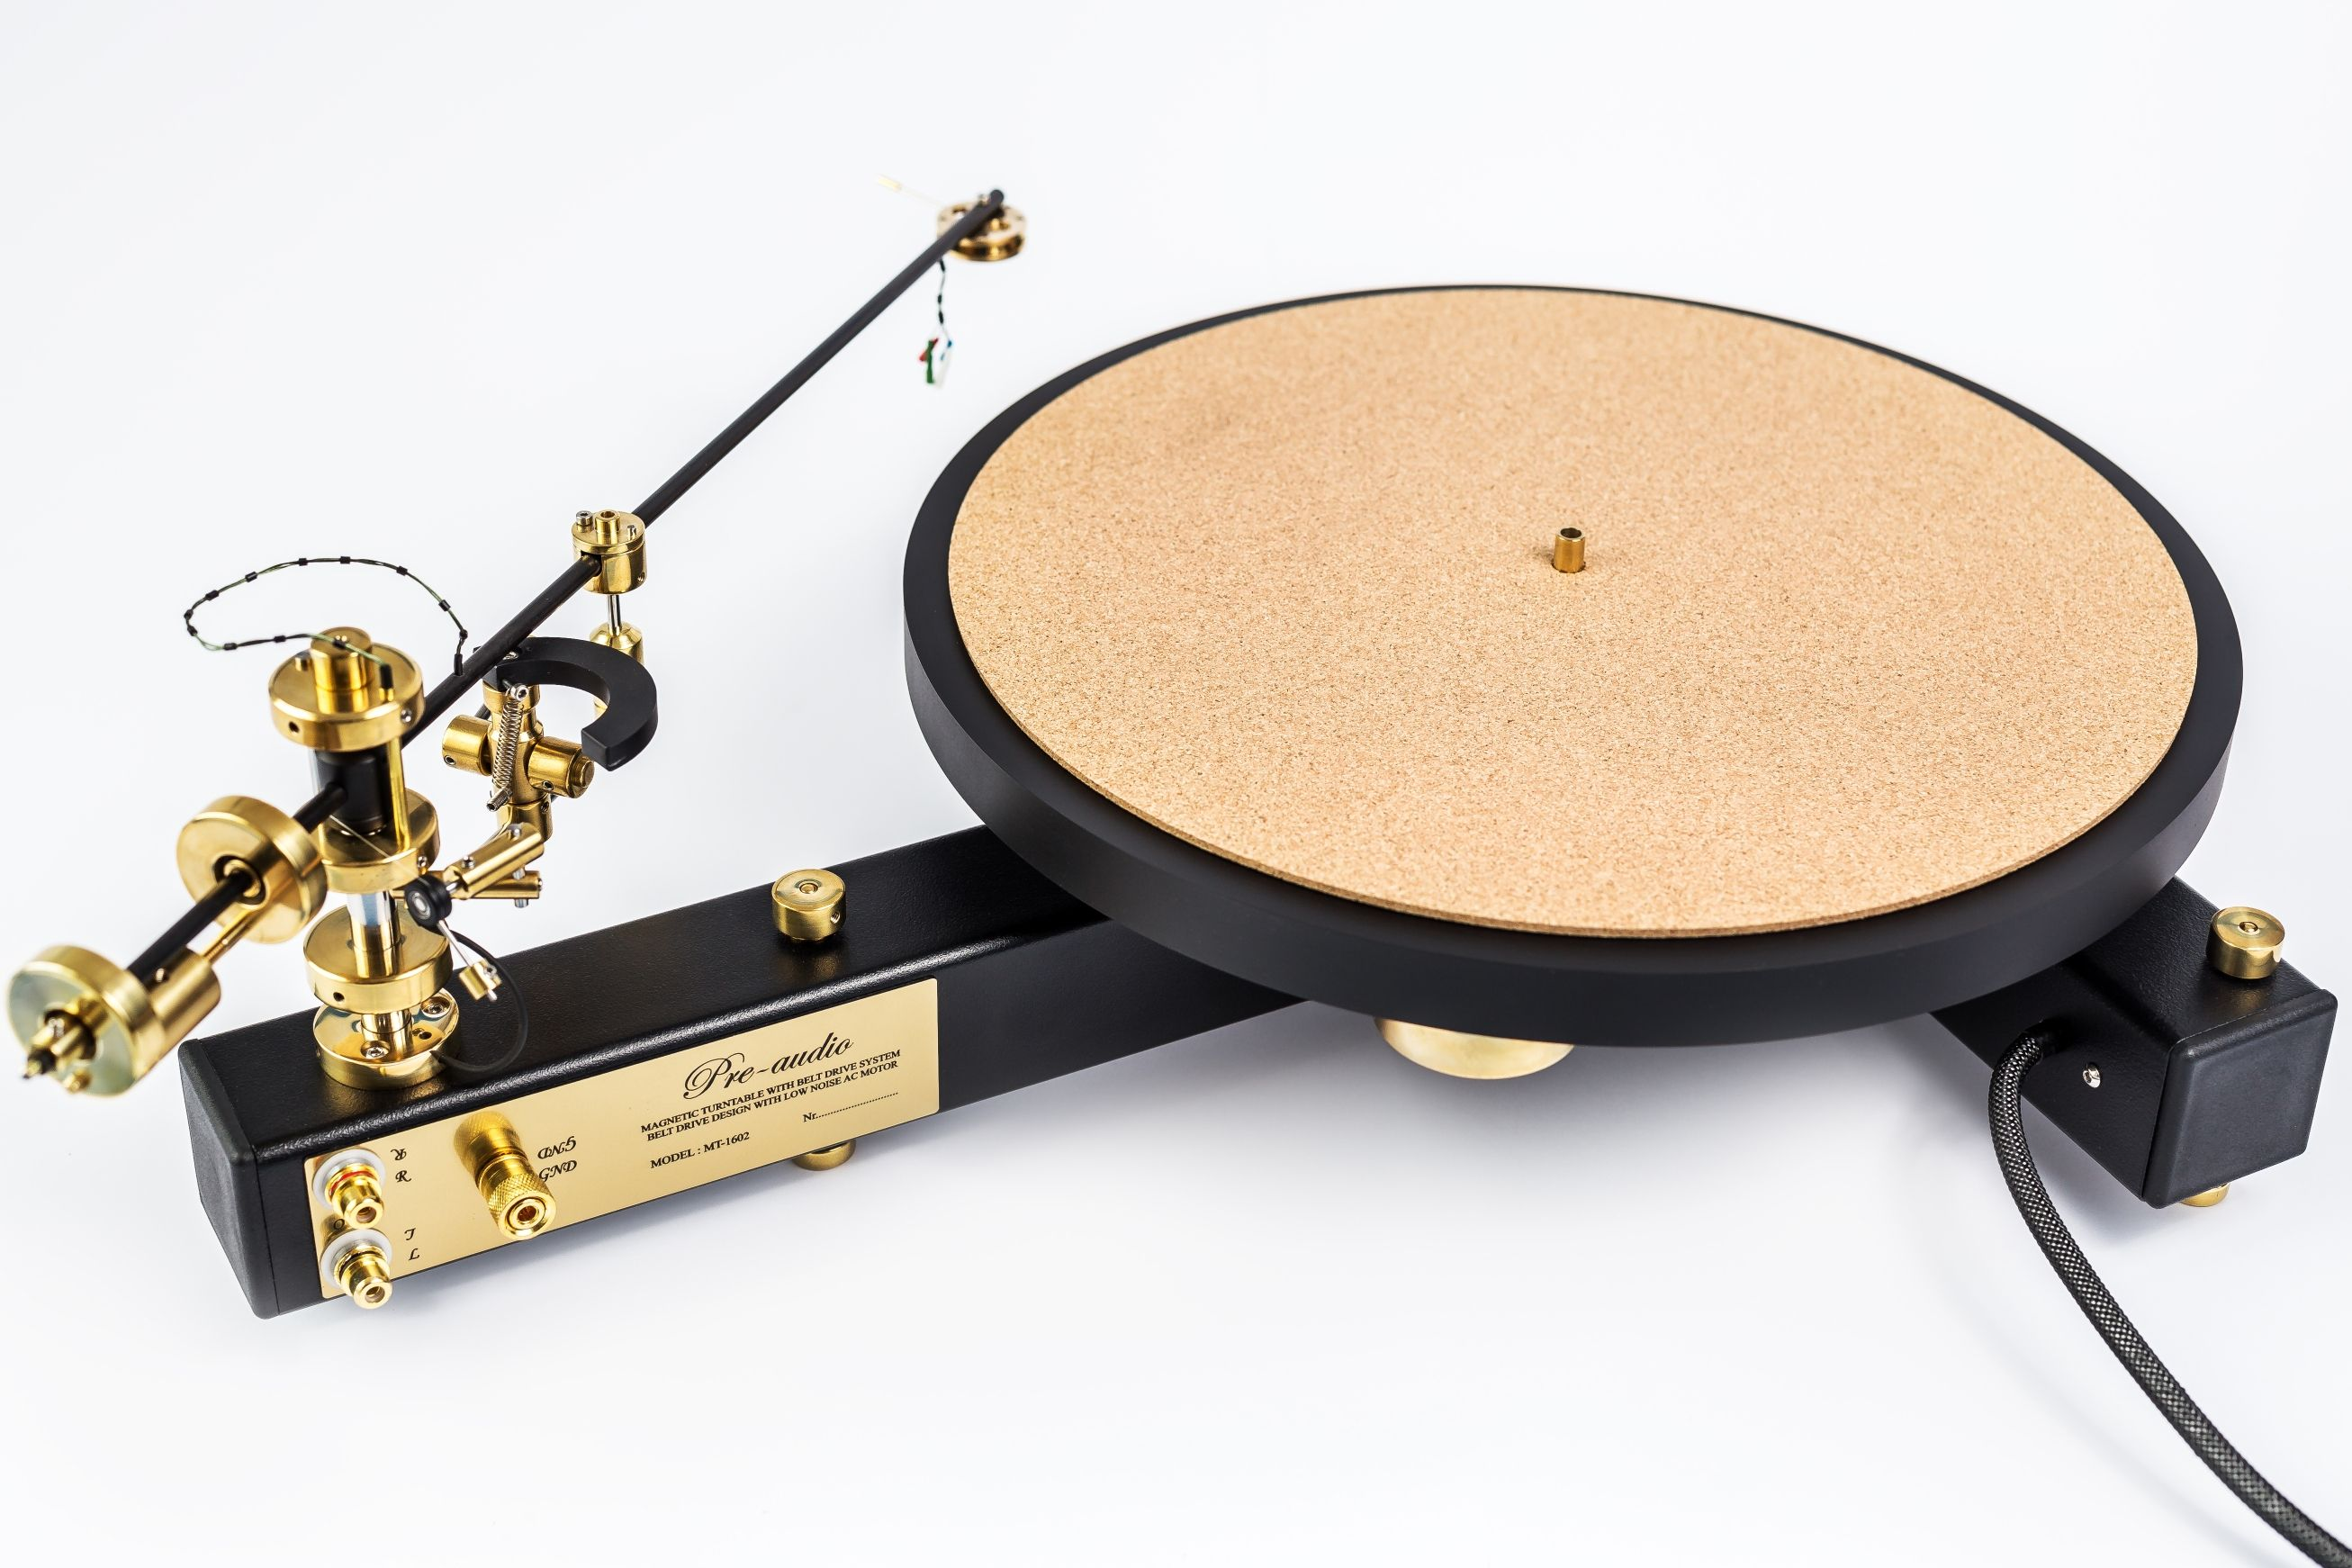 Gramophone Classic Mt 1602 Tonearm 12 Pre Audio Hifi Turntable High End Turntables Turntable